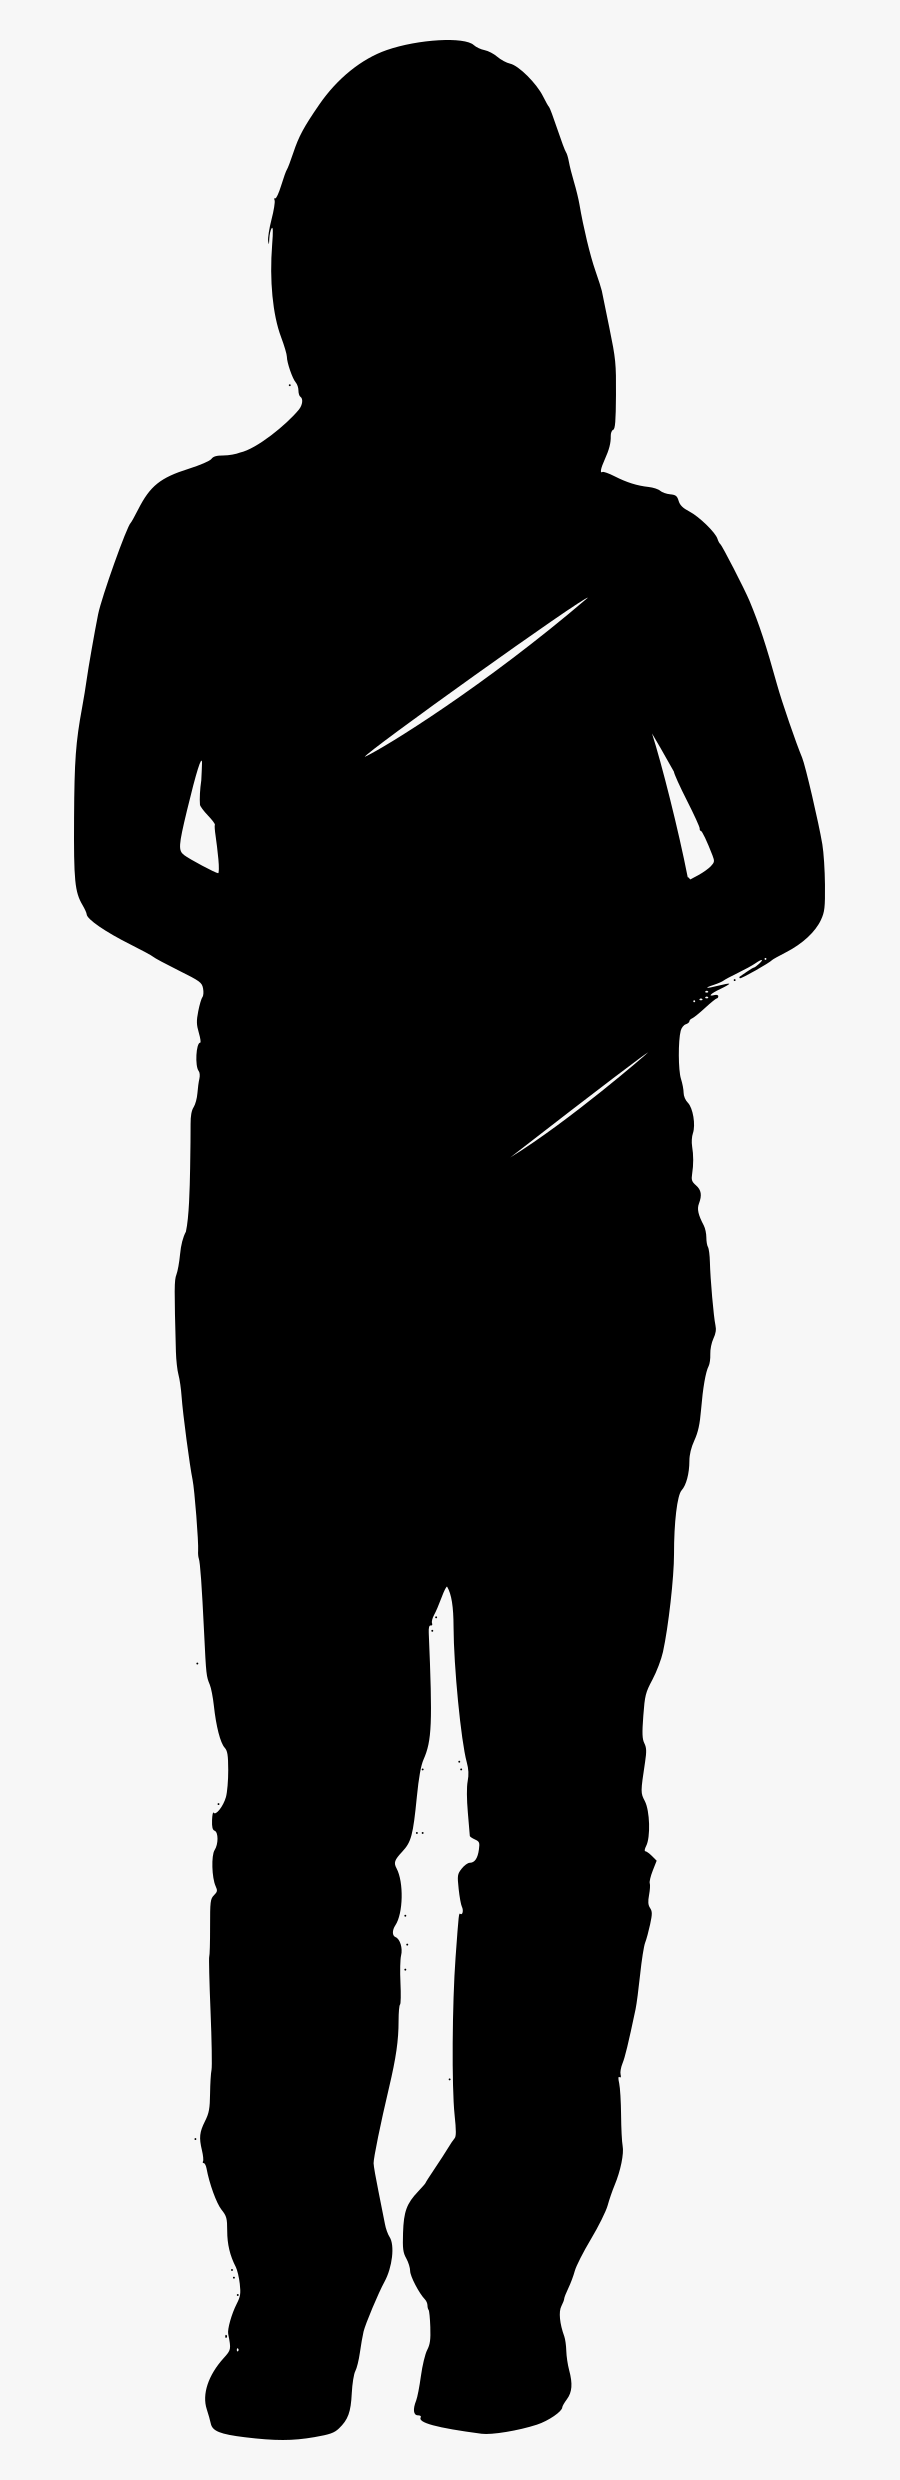 Student Silhouette Png - Girl Student Silhouette Png, Transparent Clipart